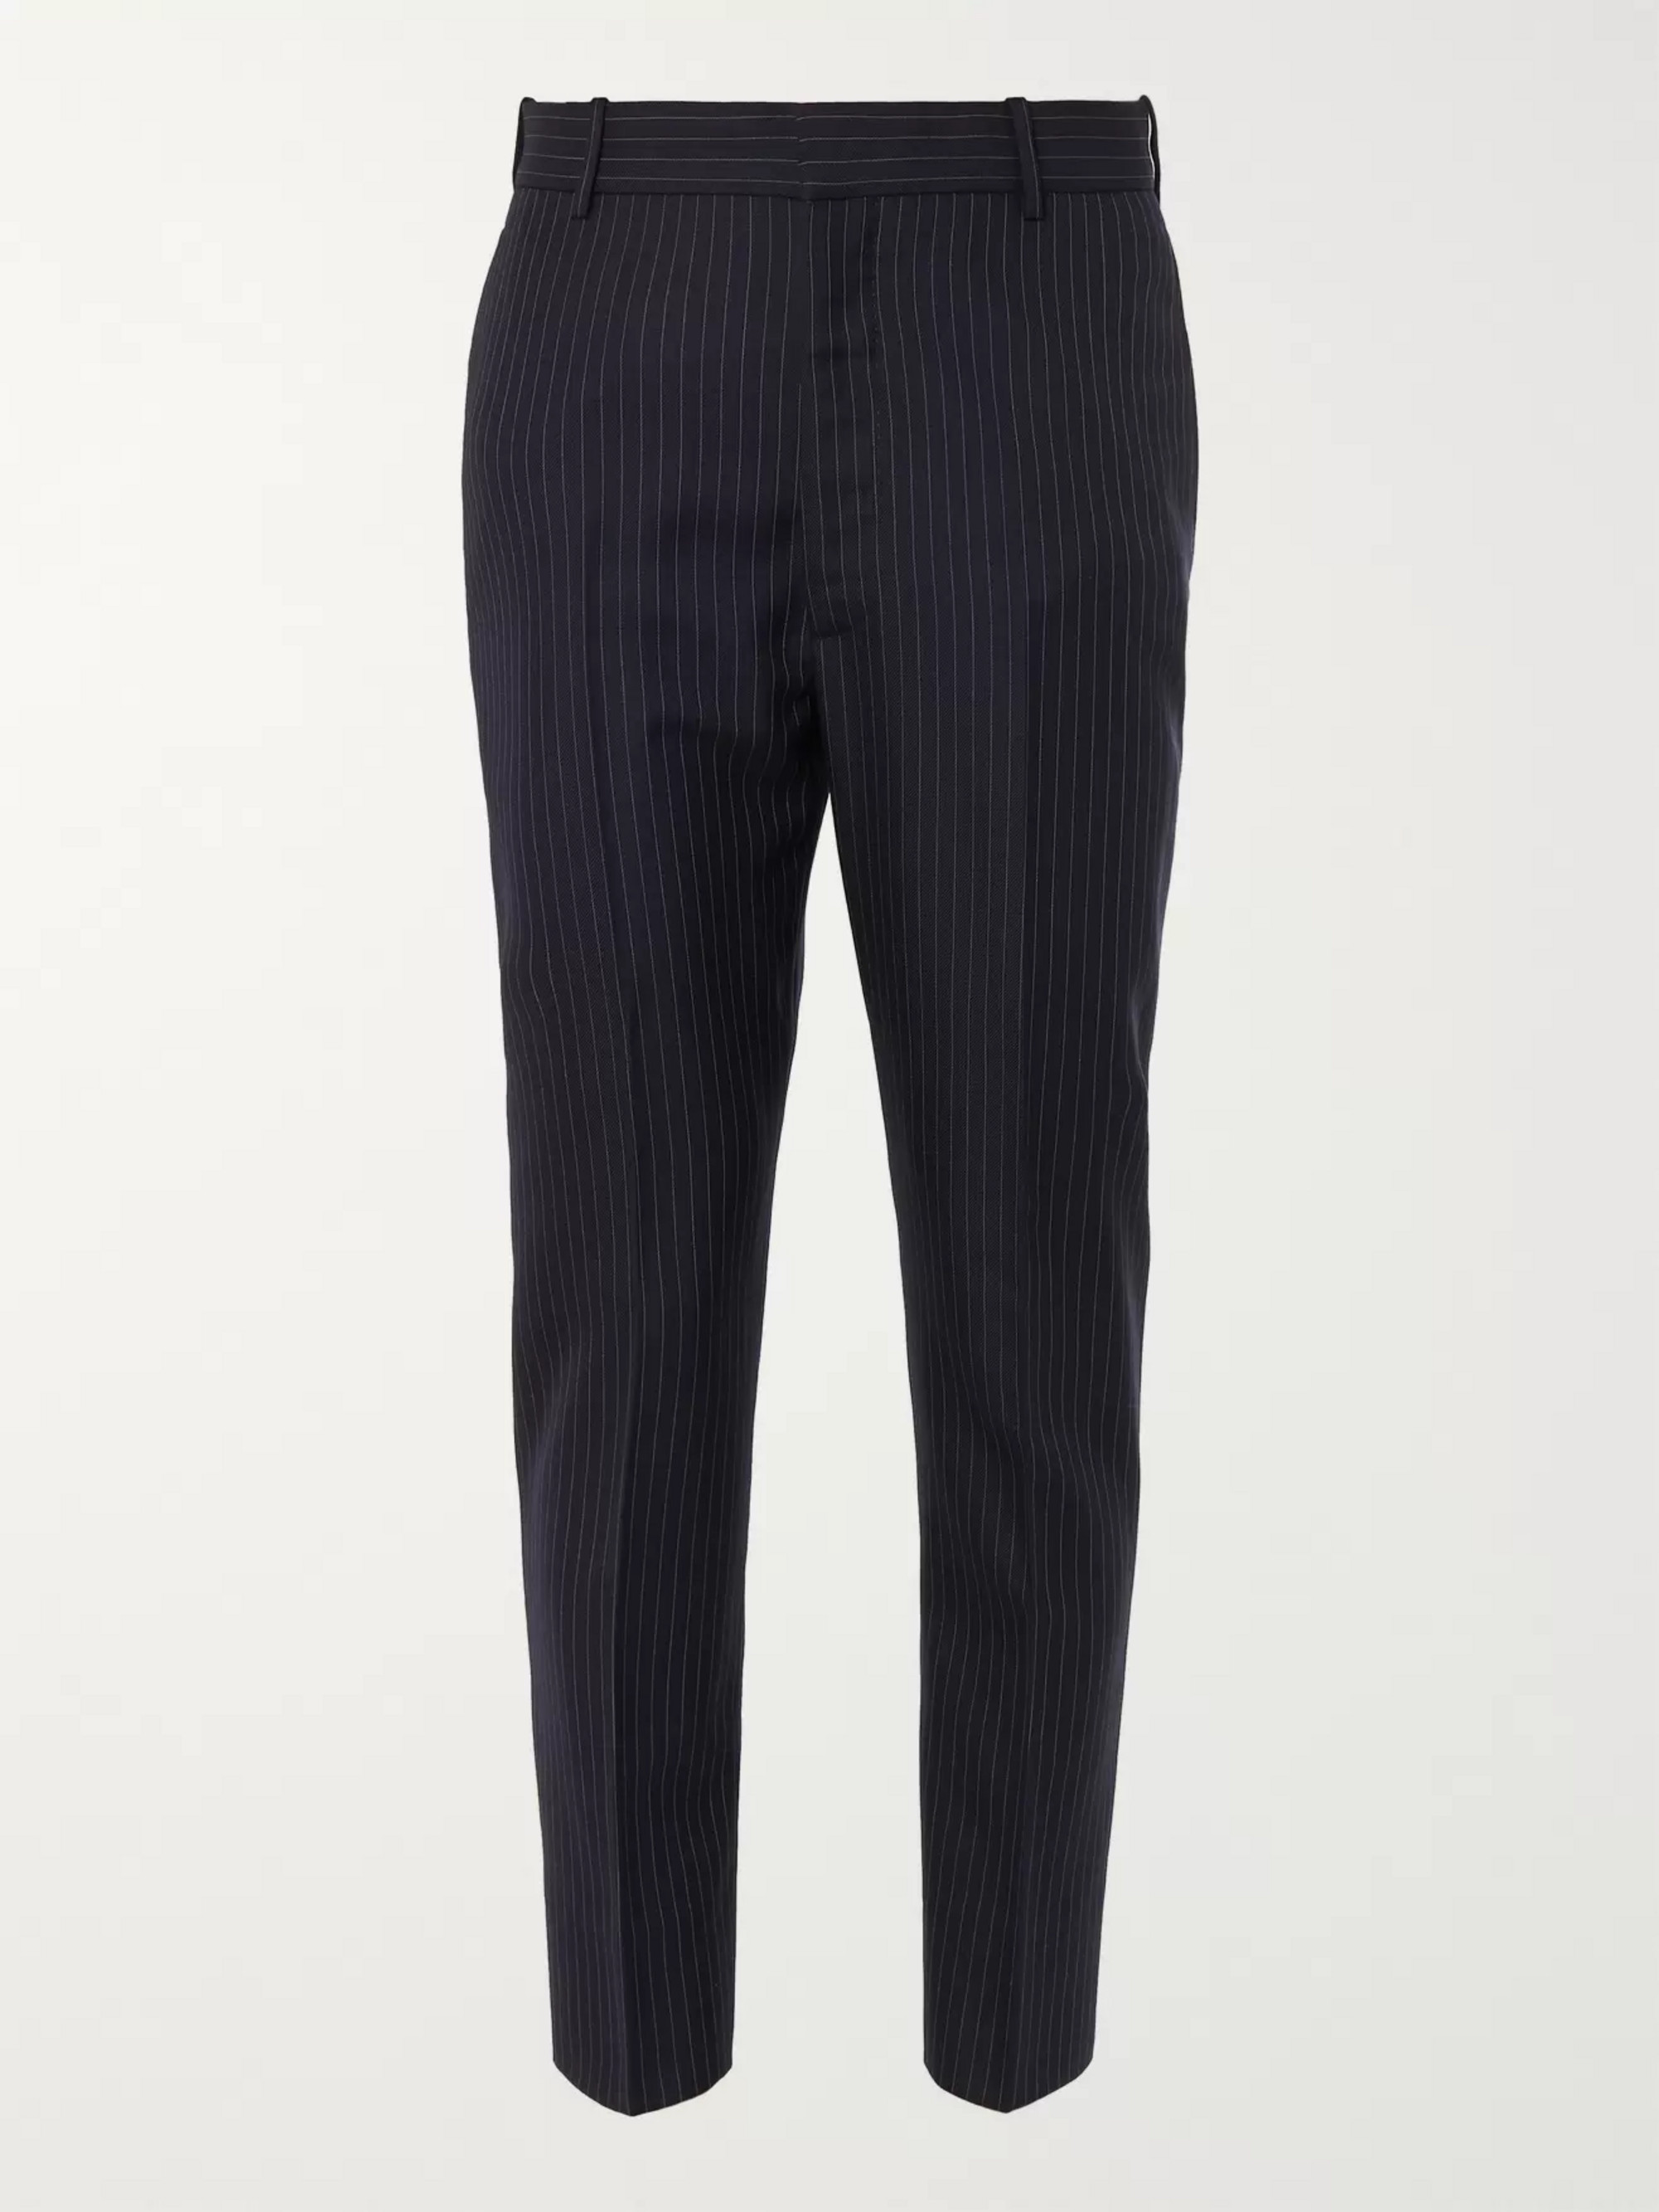 Alexander McQueen Navy Slim-Fit Pinstriped Wool Suit Trousers